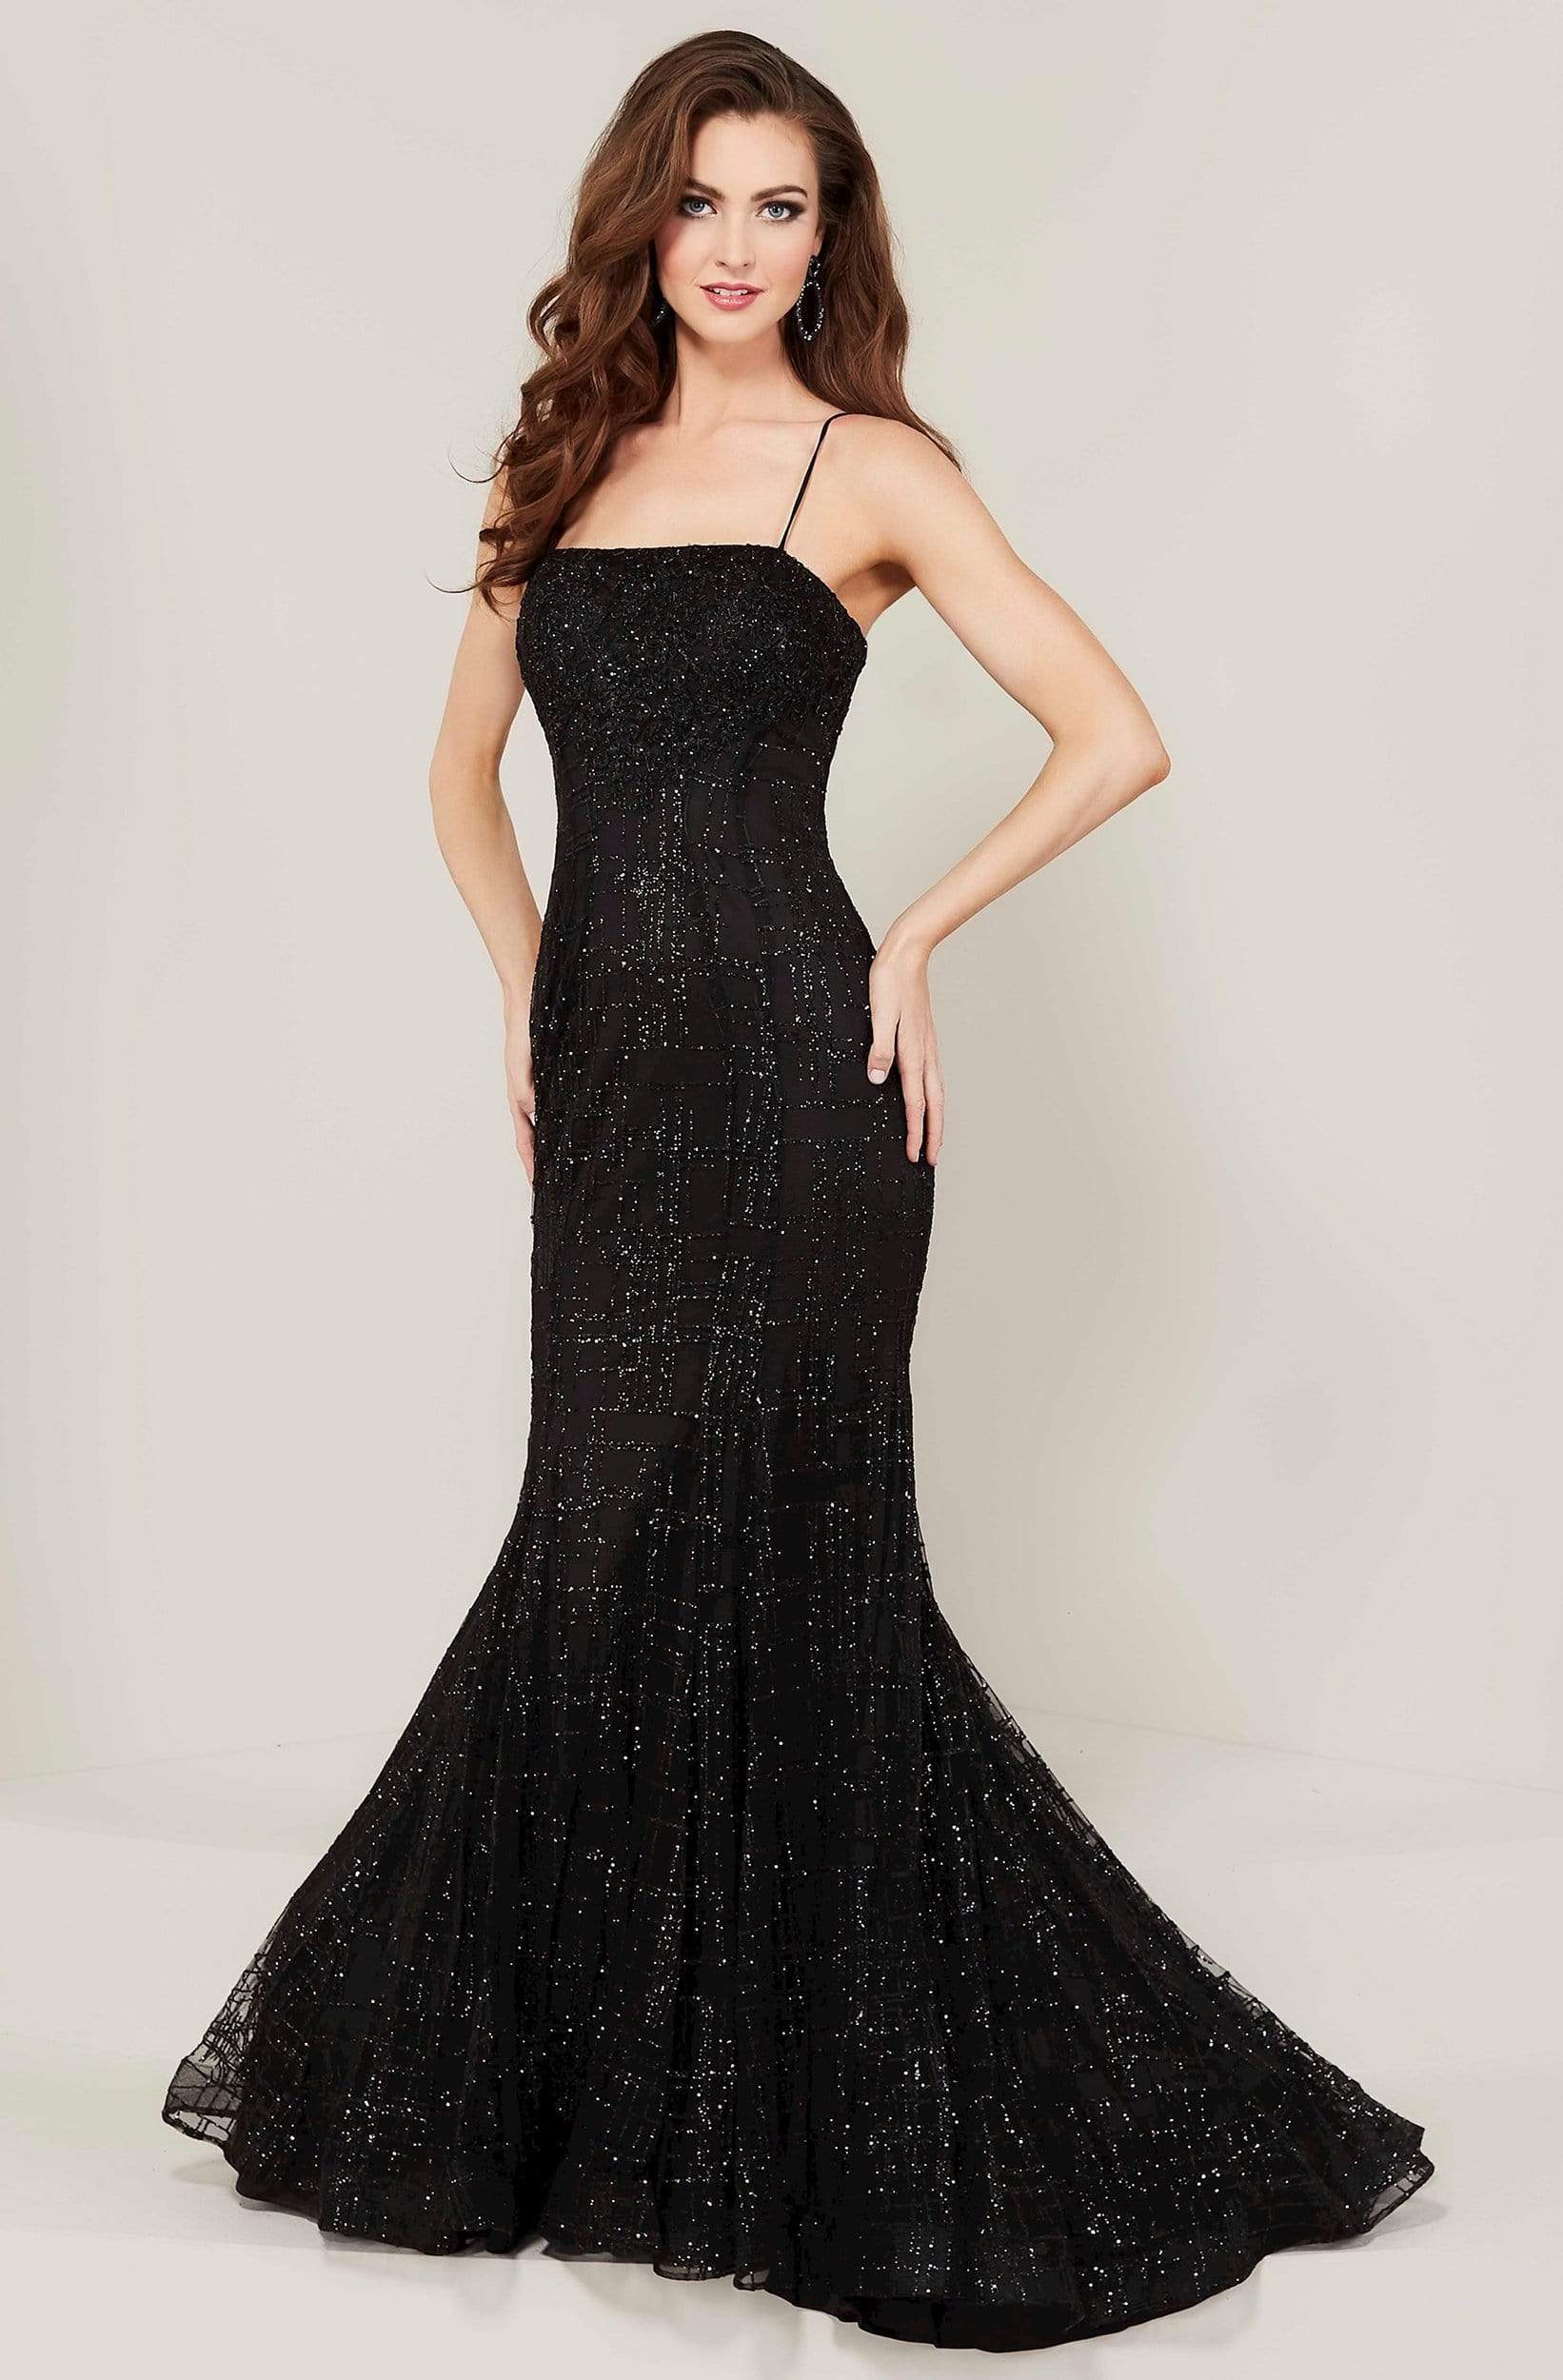 Tiffany Designs - 16339 Strapless Evening Gown with Overlay from Tiffany Designs